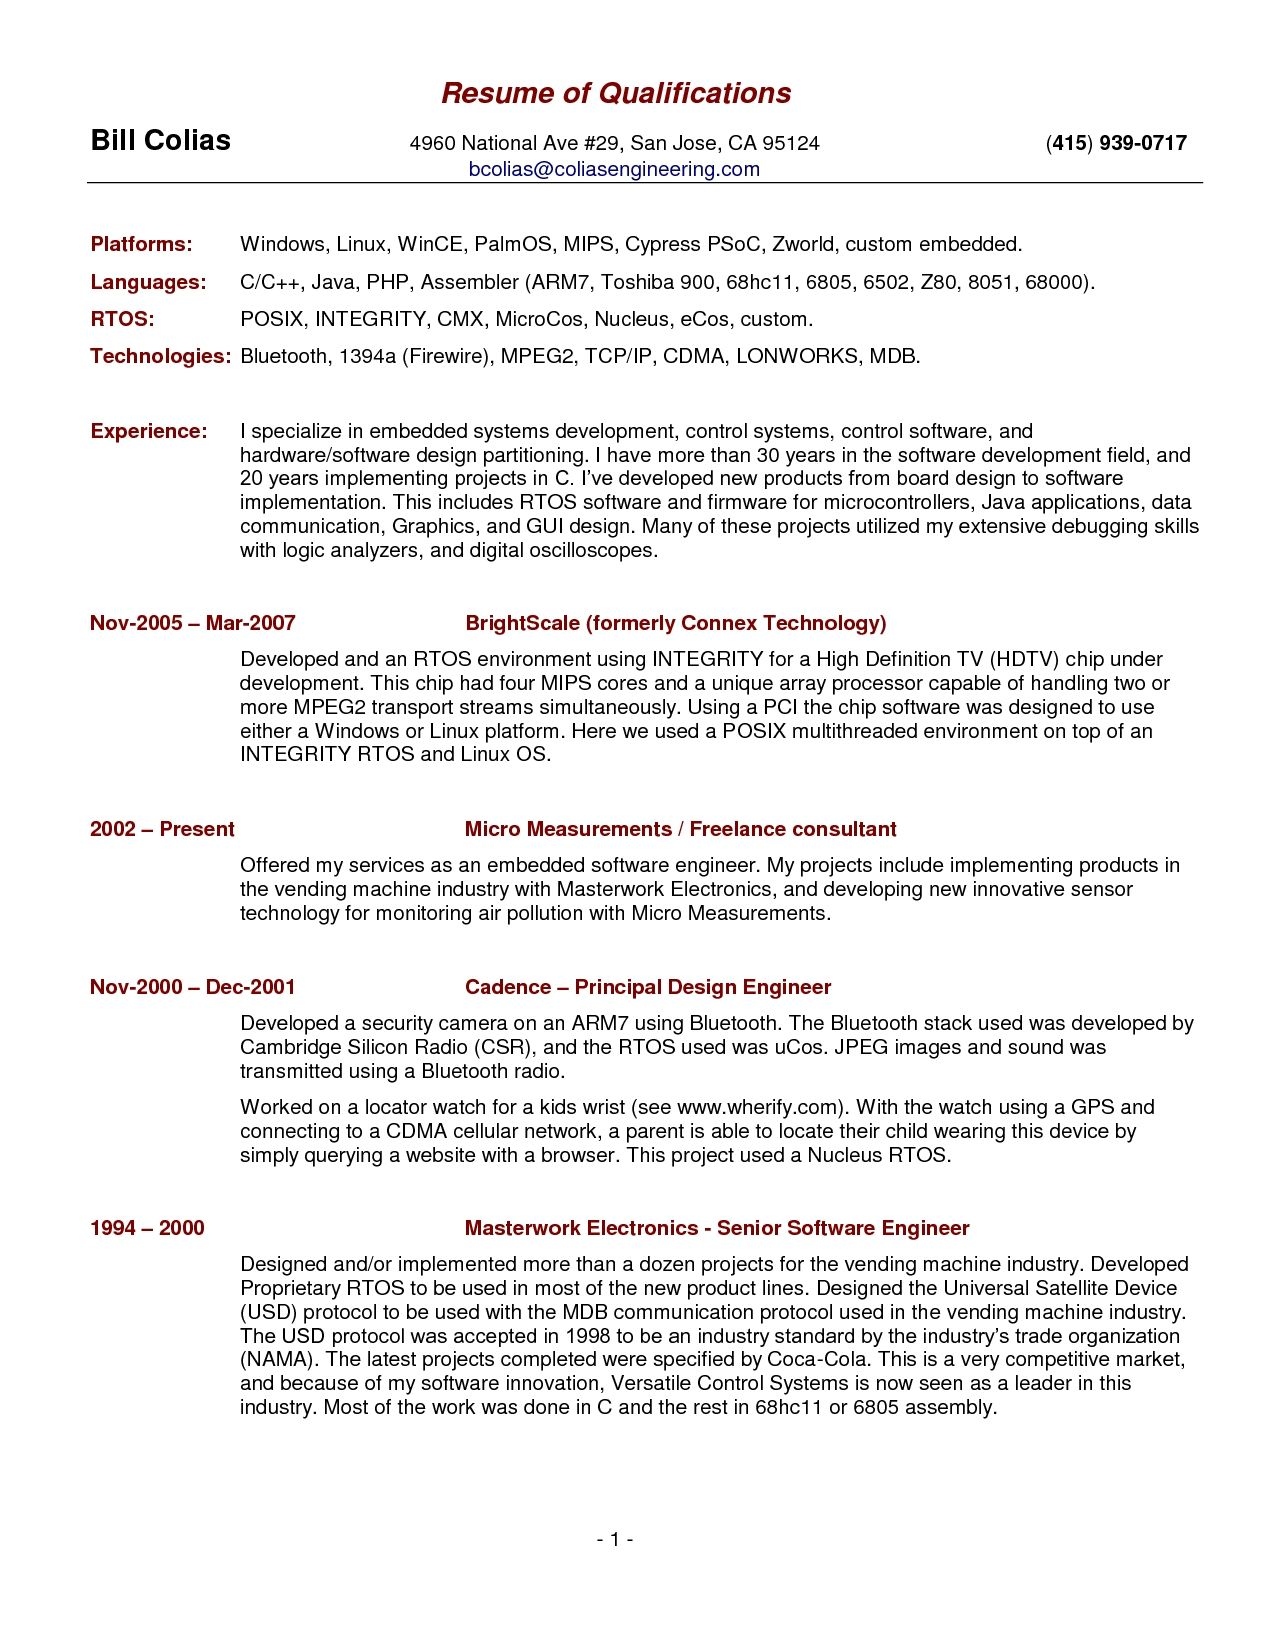 Resume Example Of Qualifications And Skills For Resume qualifications for a resume examples 7f8ea3a2a new skills and examples